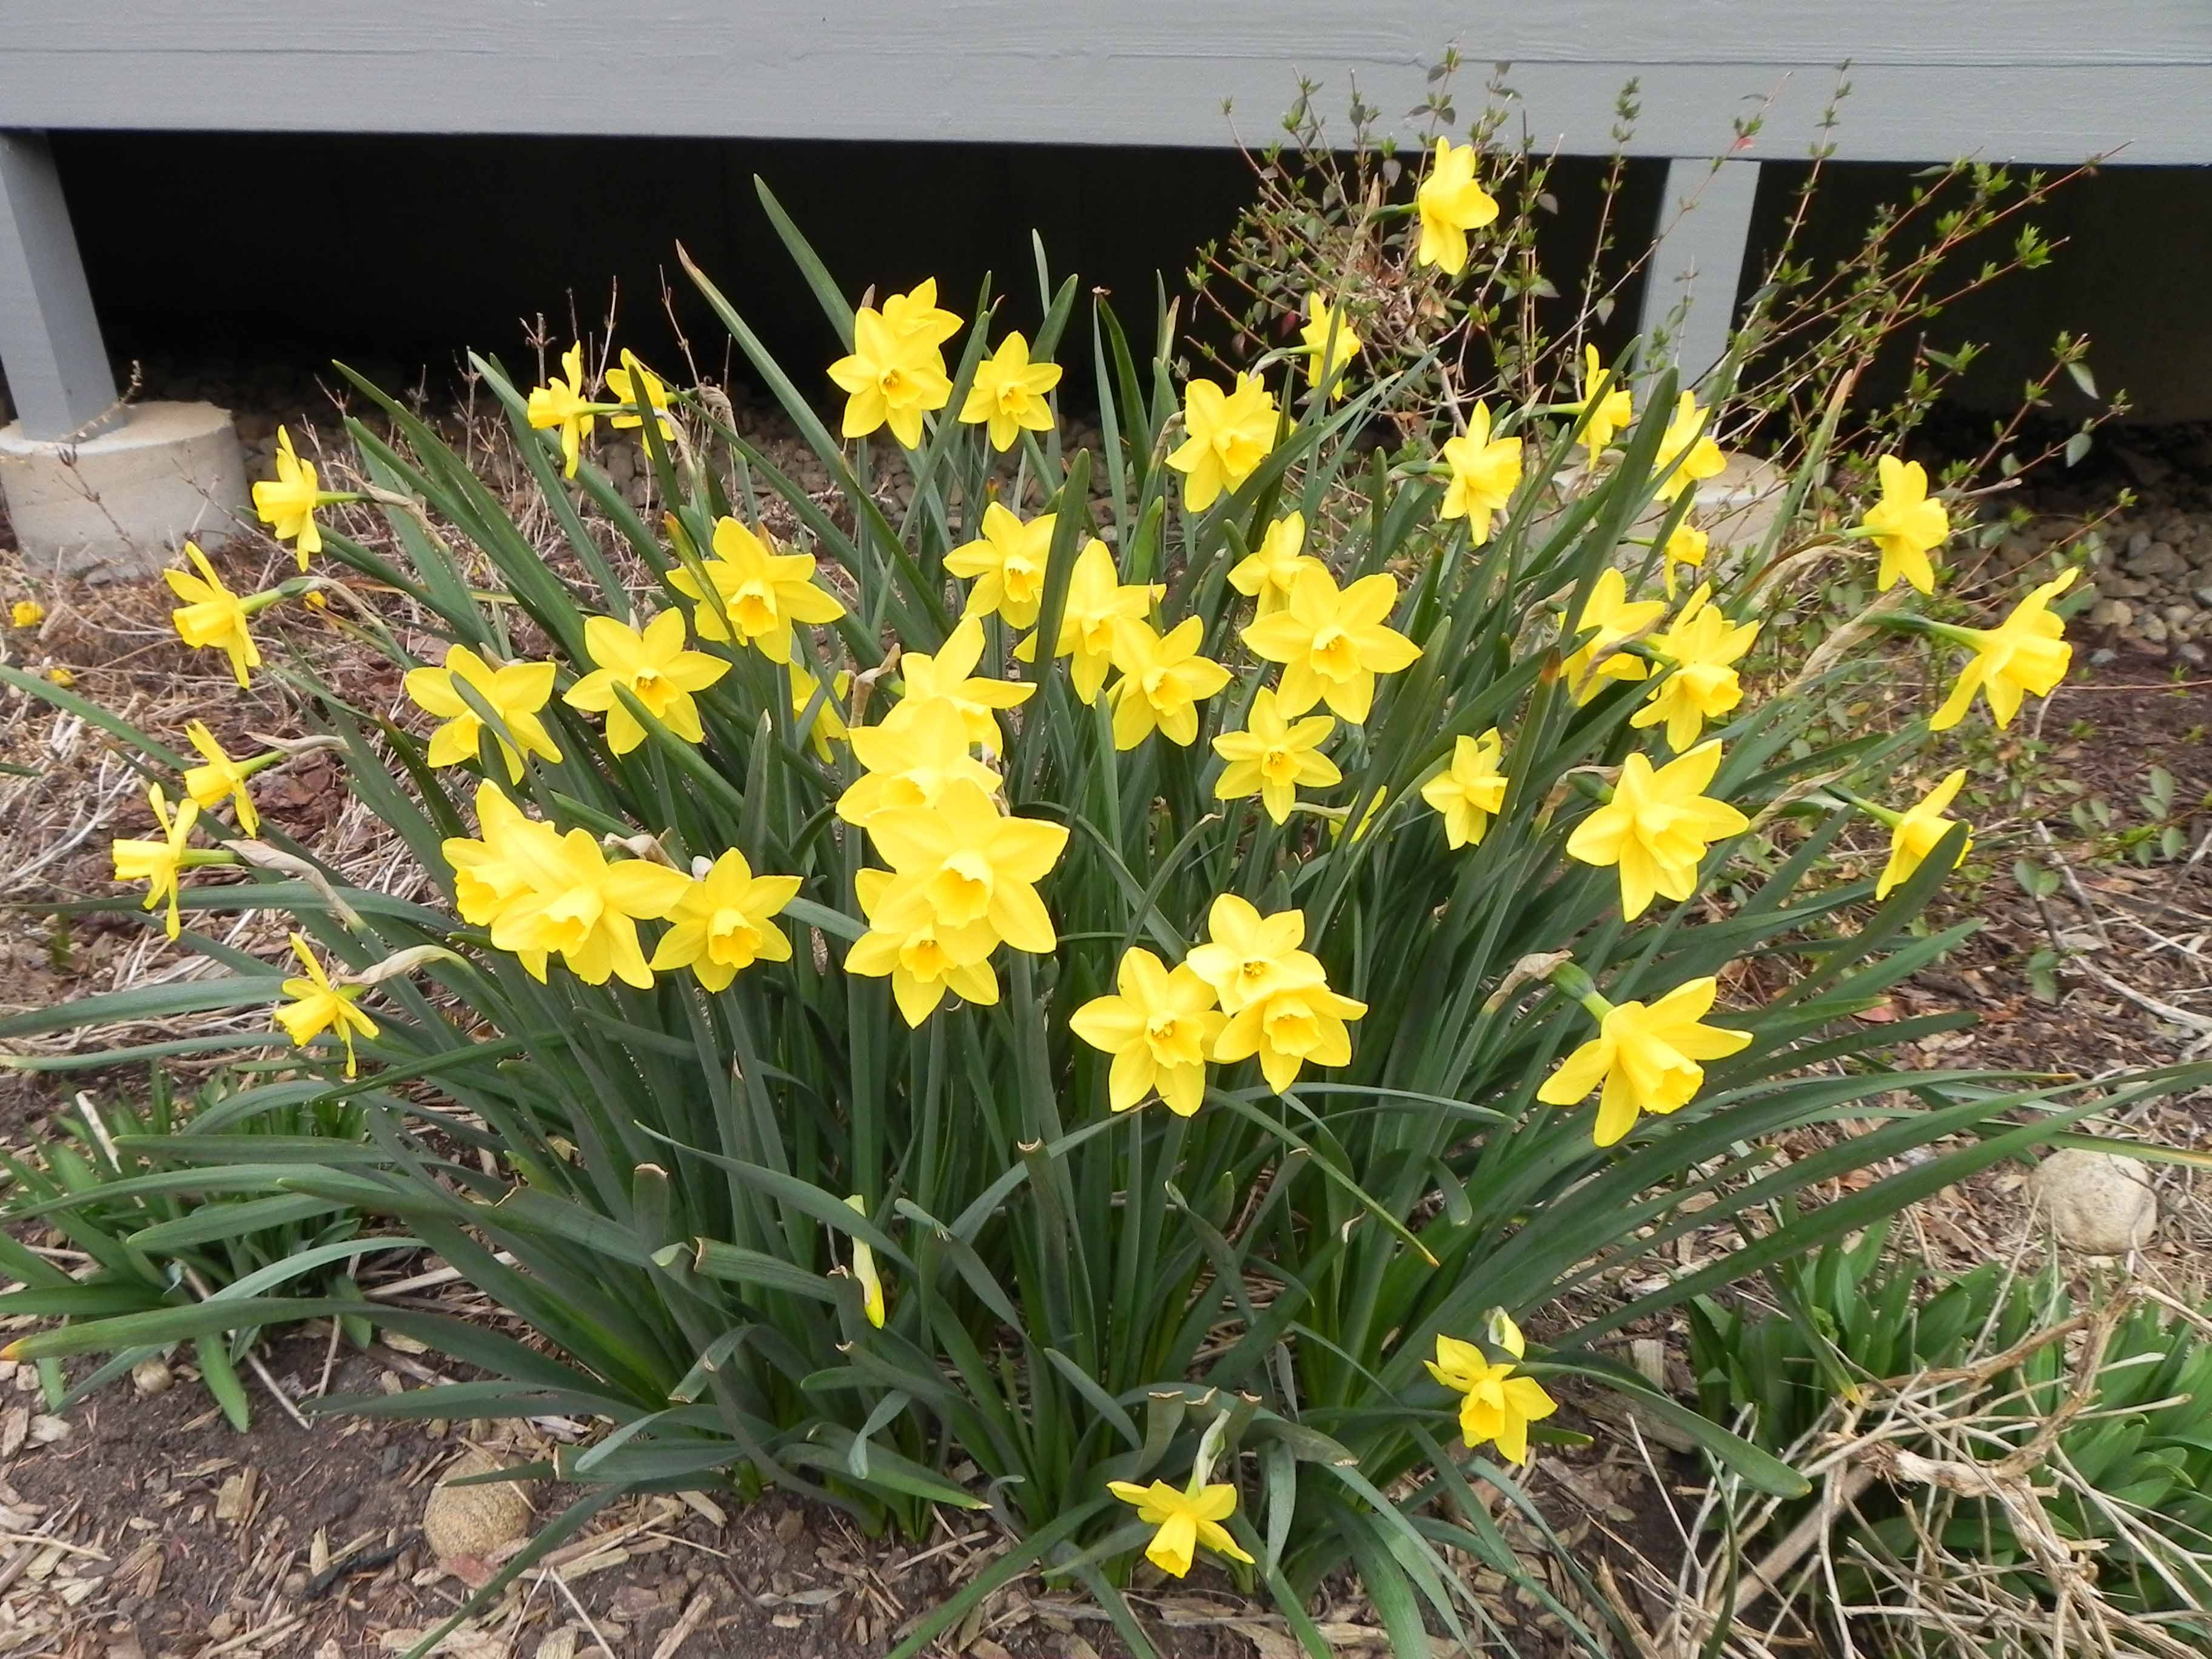 Daffodils From January To April The